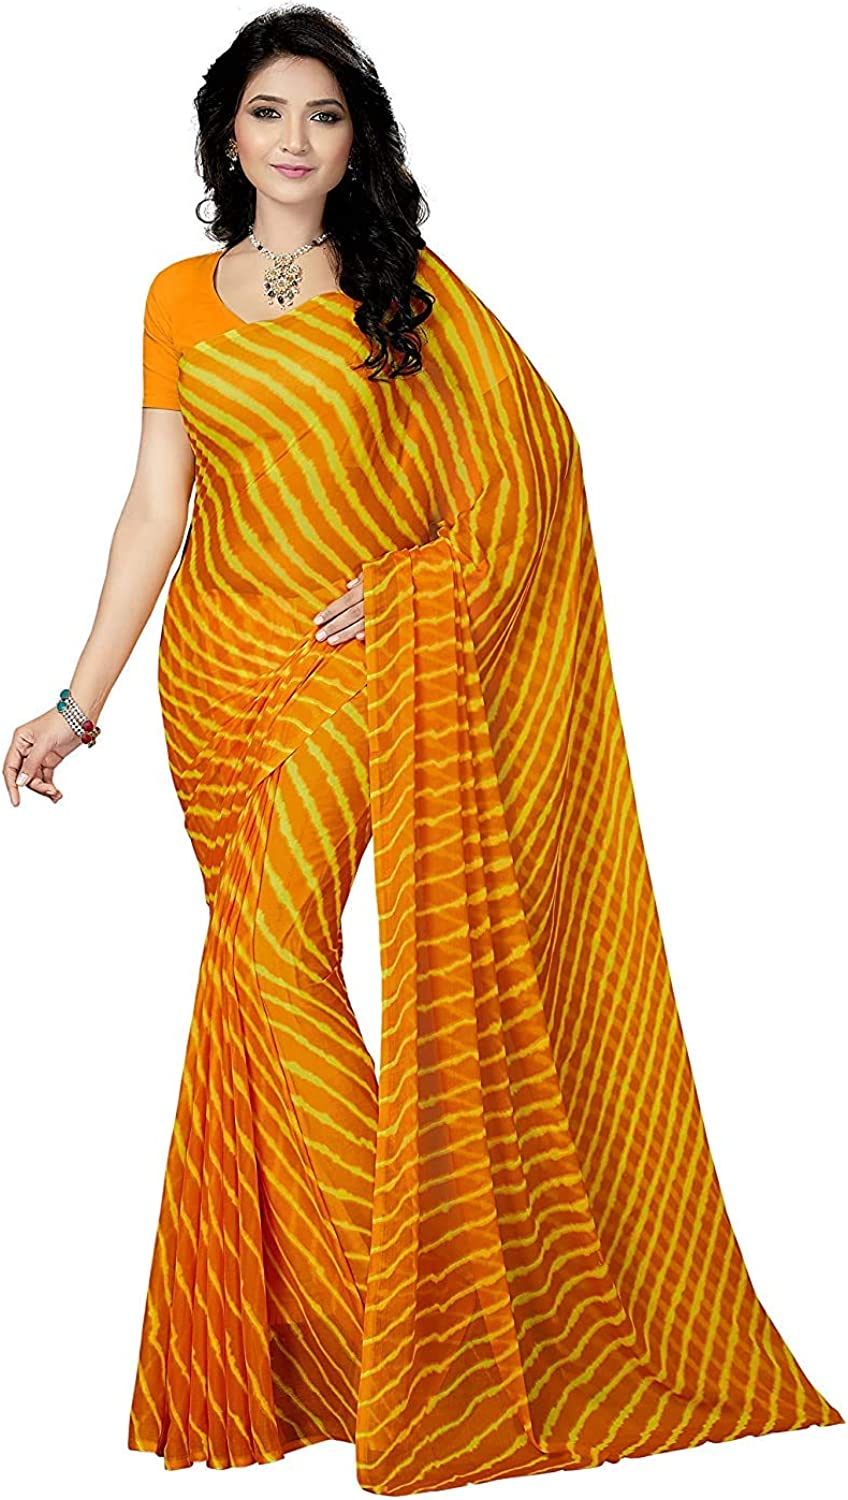 Raleigh Mall Women's Chiffon Saree Without Blouse Piece Dresses Ethnic Indian Popular popular